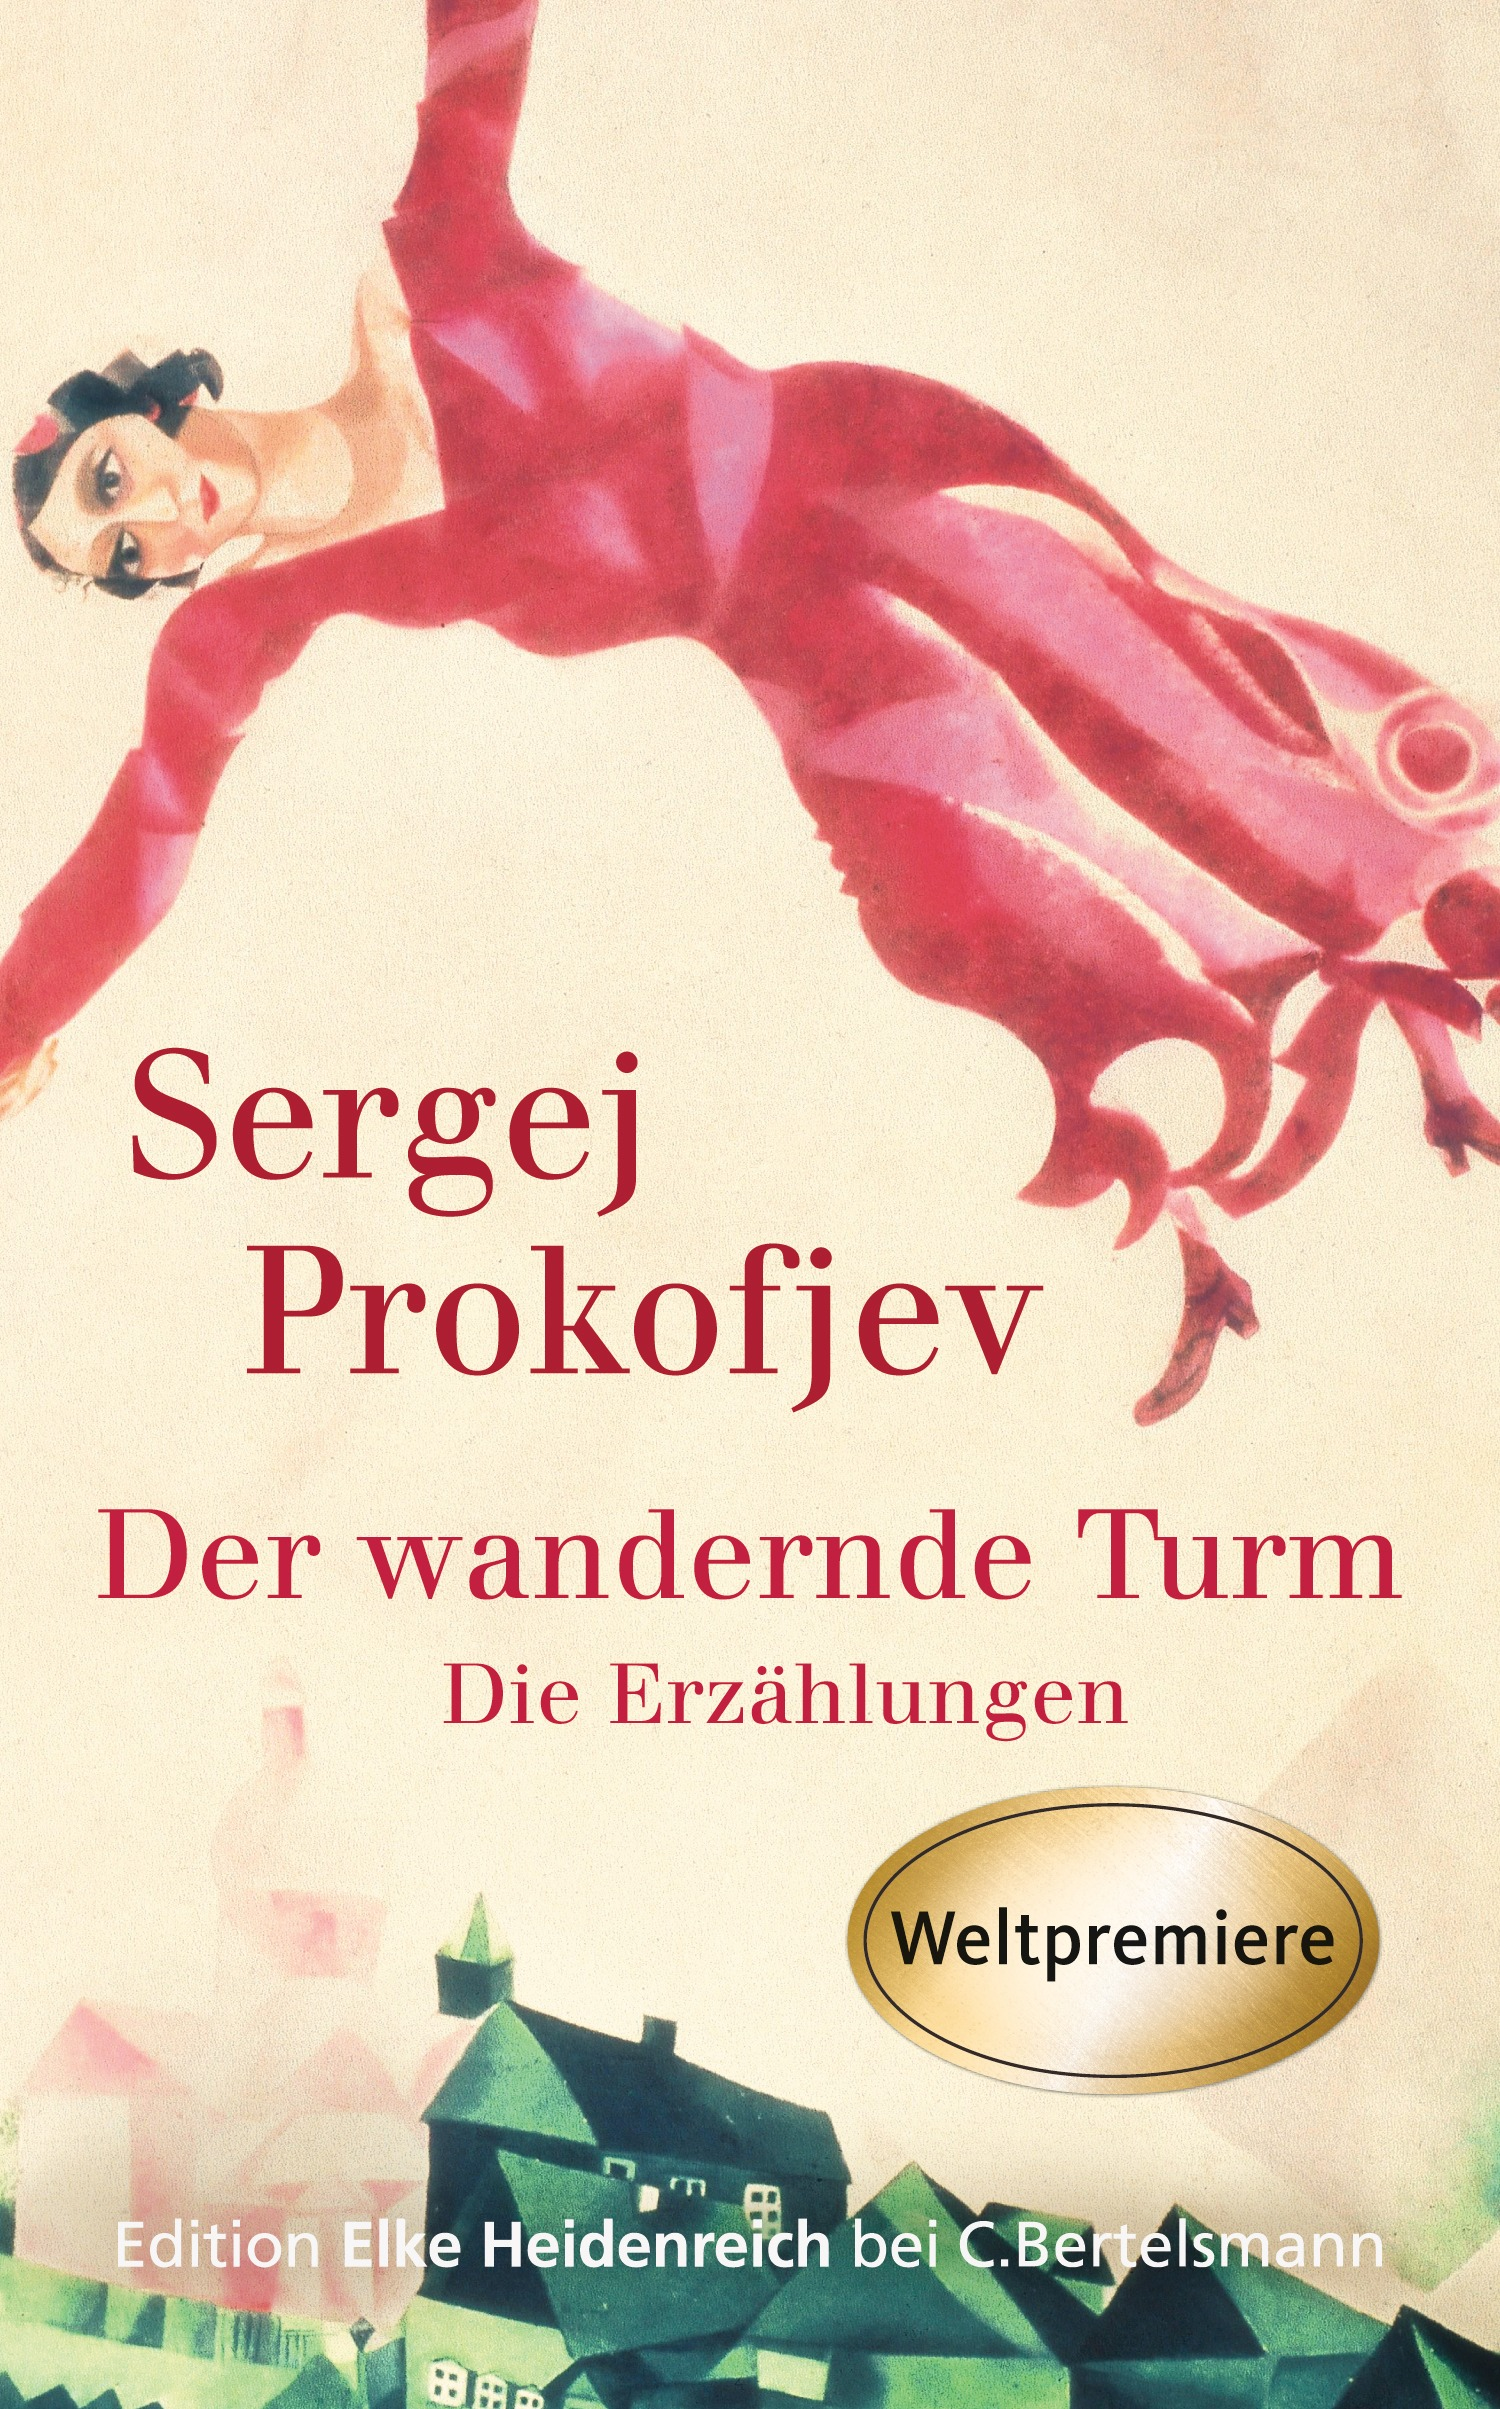 sergej prokofjev der wandernde turm c bertelsmann verlag ebook. Black Bedroom Furniture Sets. Home Design Ideas